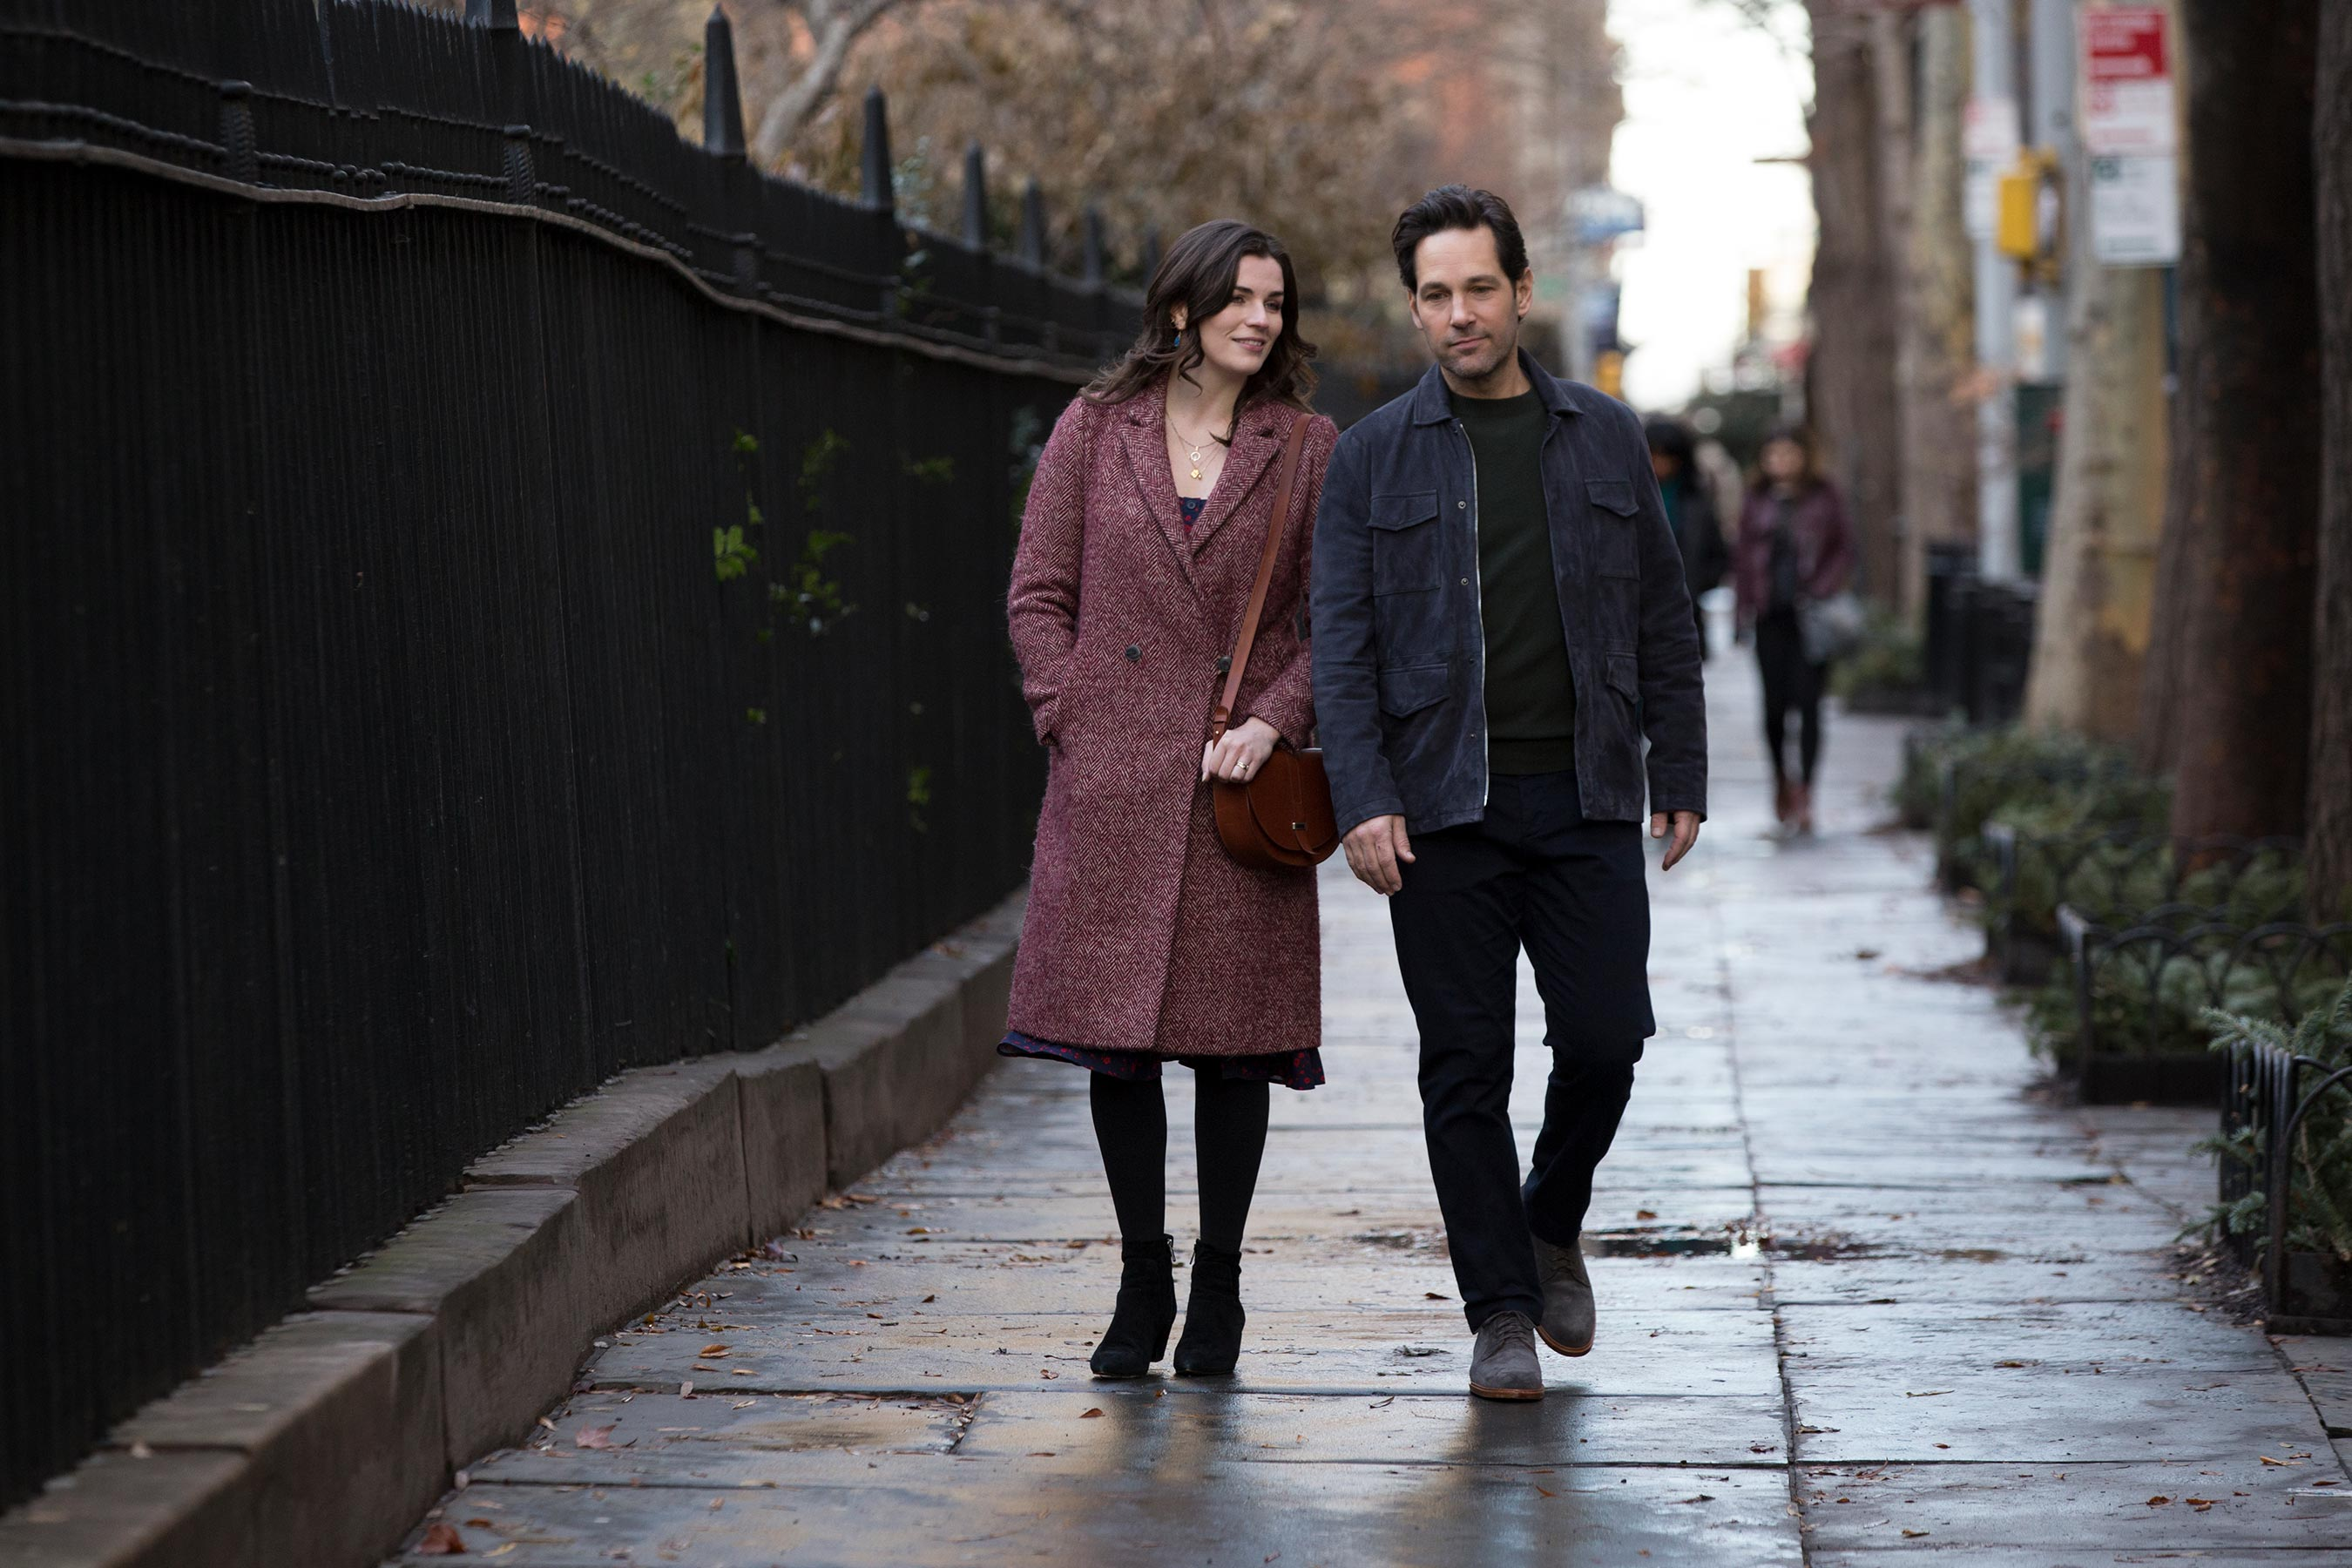 Paul-Rudd-and-Aisling-Bea-in-Netflixs-Living-With-Yourself-street